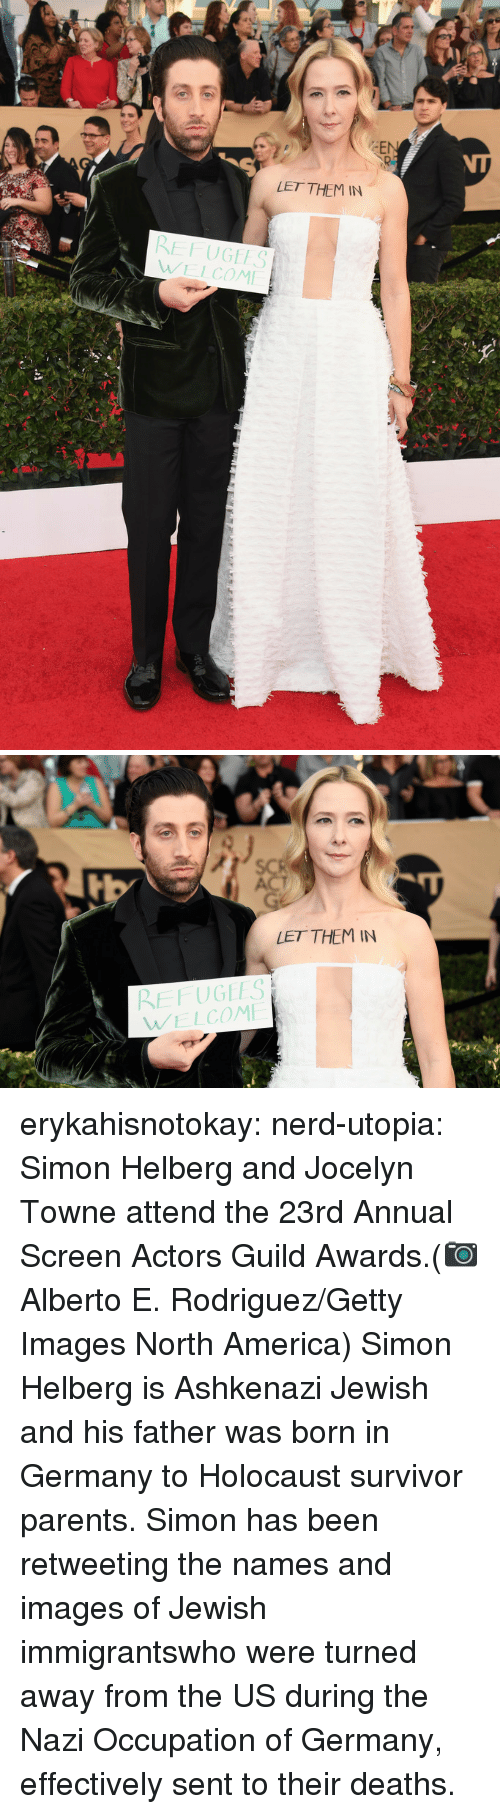 guild: EN  LET THEM IN  RE FUGEES  WELCOM   LET THEMIN  REFUGEES  WELCOM  erykahisnotokay: nerd-utopia: Simon Helberg and Jocelyn Towne attend the 23rd Annual Screen Actors Guild Awards.(📷 Alberto E. Rodriguez/Getty Images North America)  Simon Helberg is Ashkenazi Jewish and his father was born in Germany to Holocaust survivor parents. Simon has been retweeting the names and images of Jewish immigrantswho were turned away from the US during the Nazi Occupation of Germany, effectively sent to their deaths.